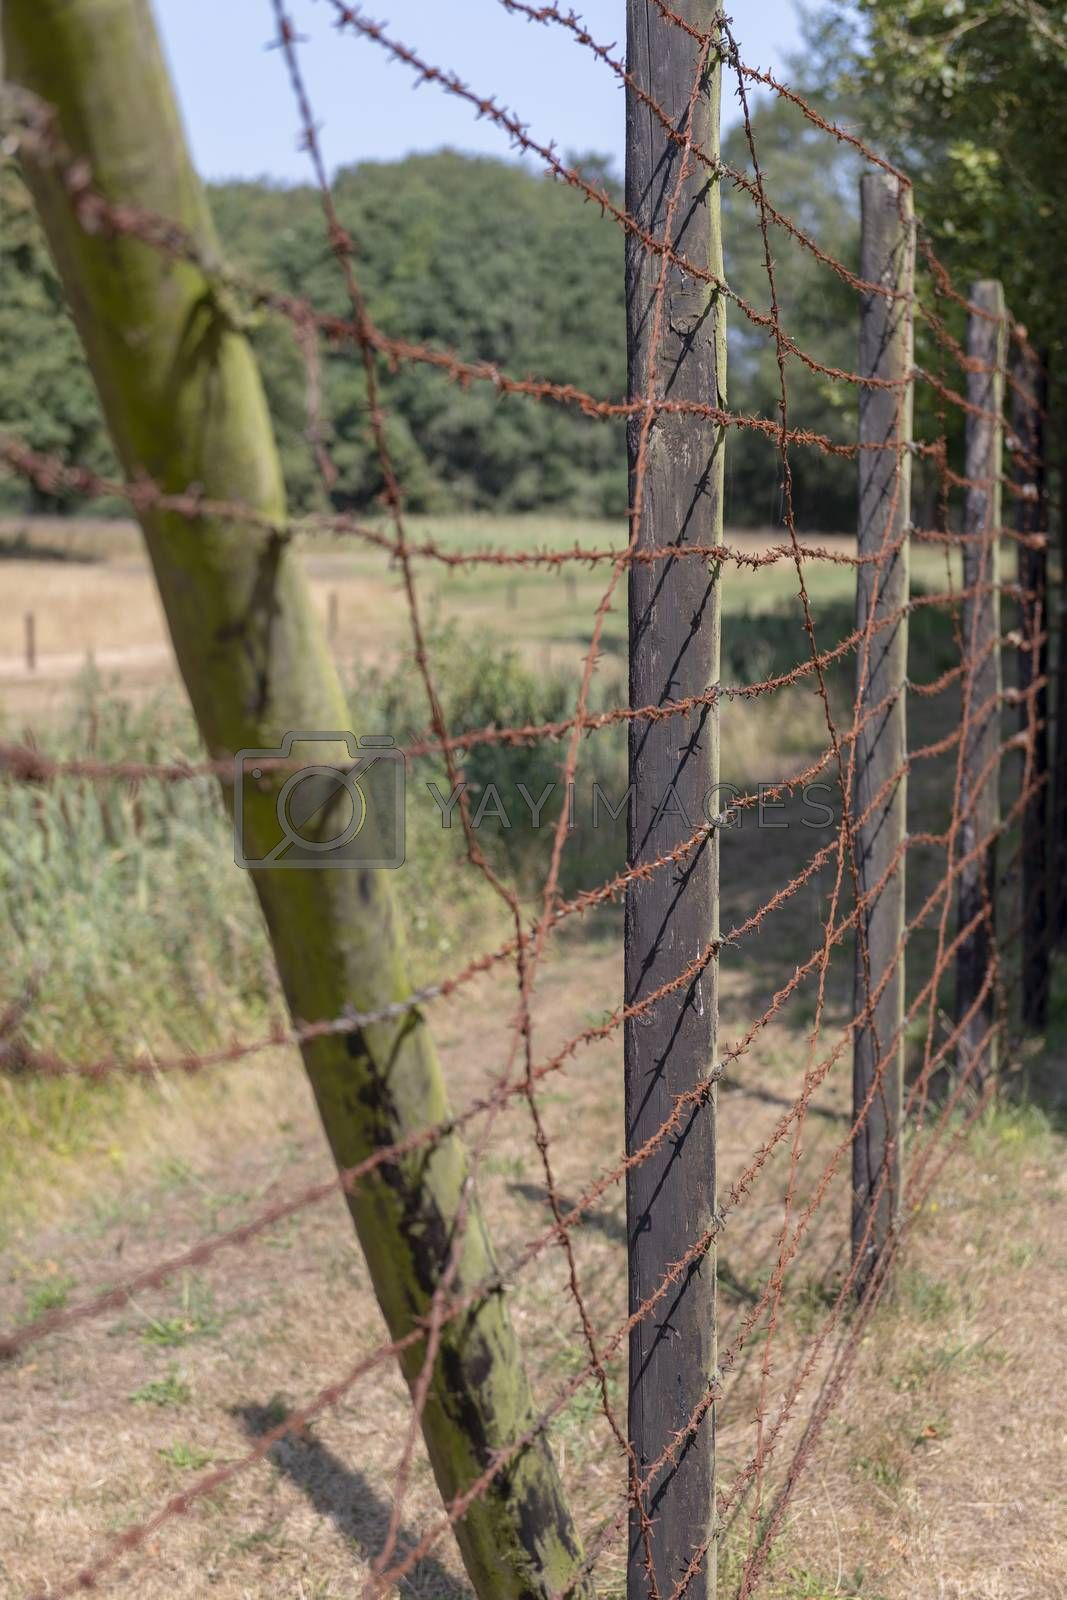 High fence with barbed wire  by Tofotografie